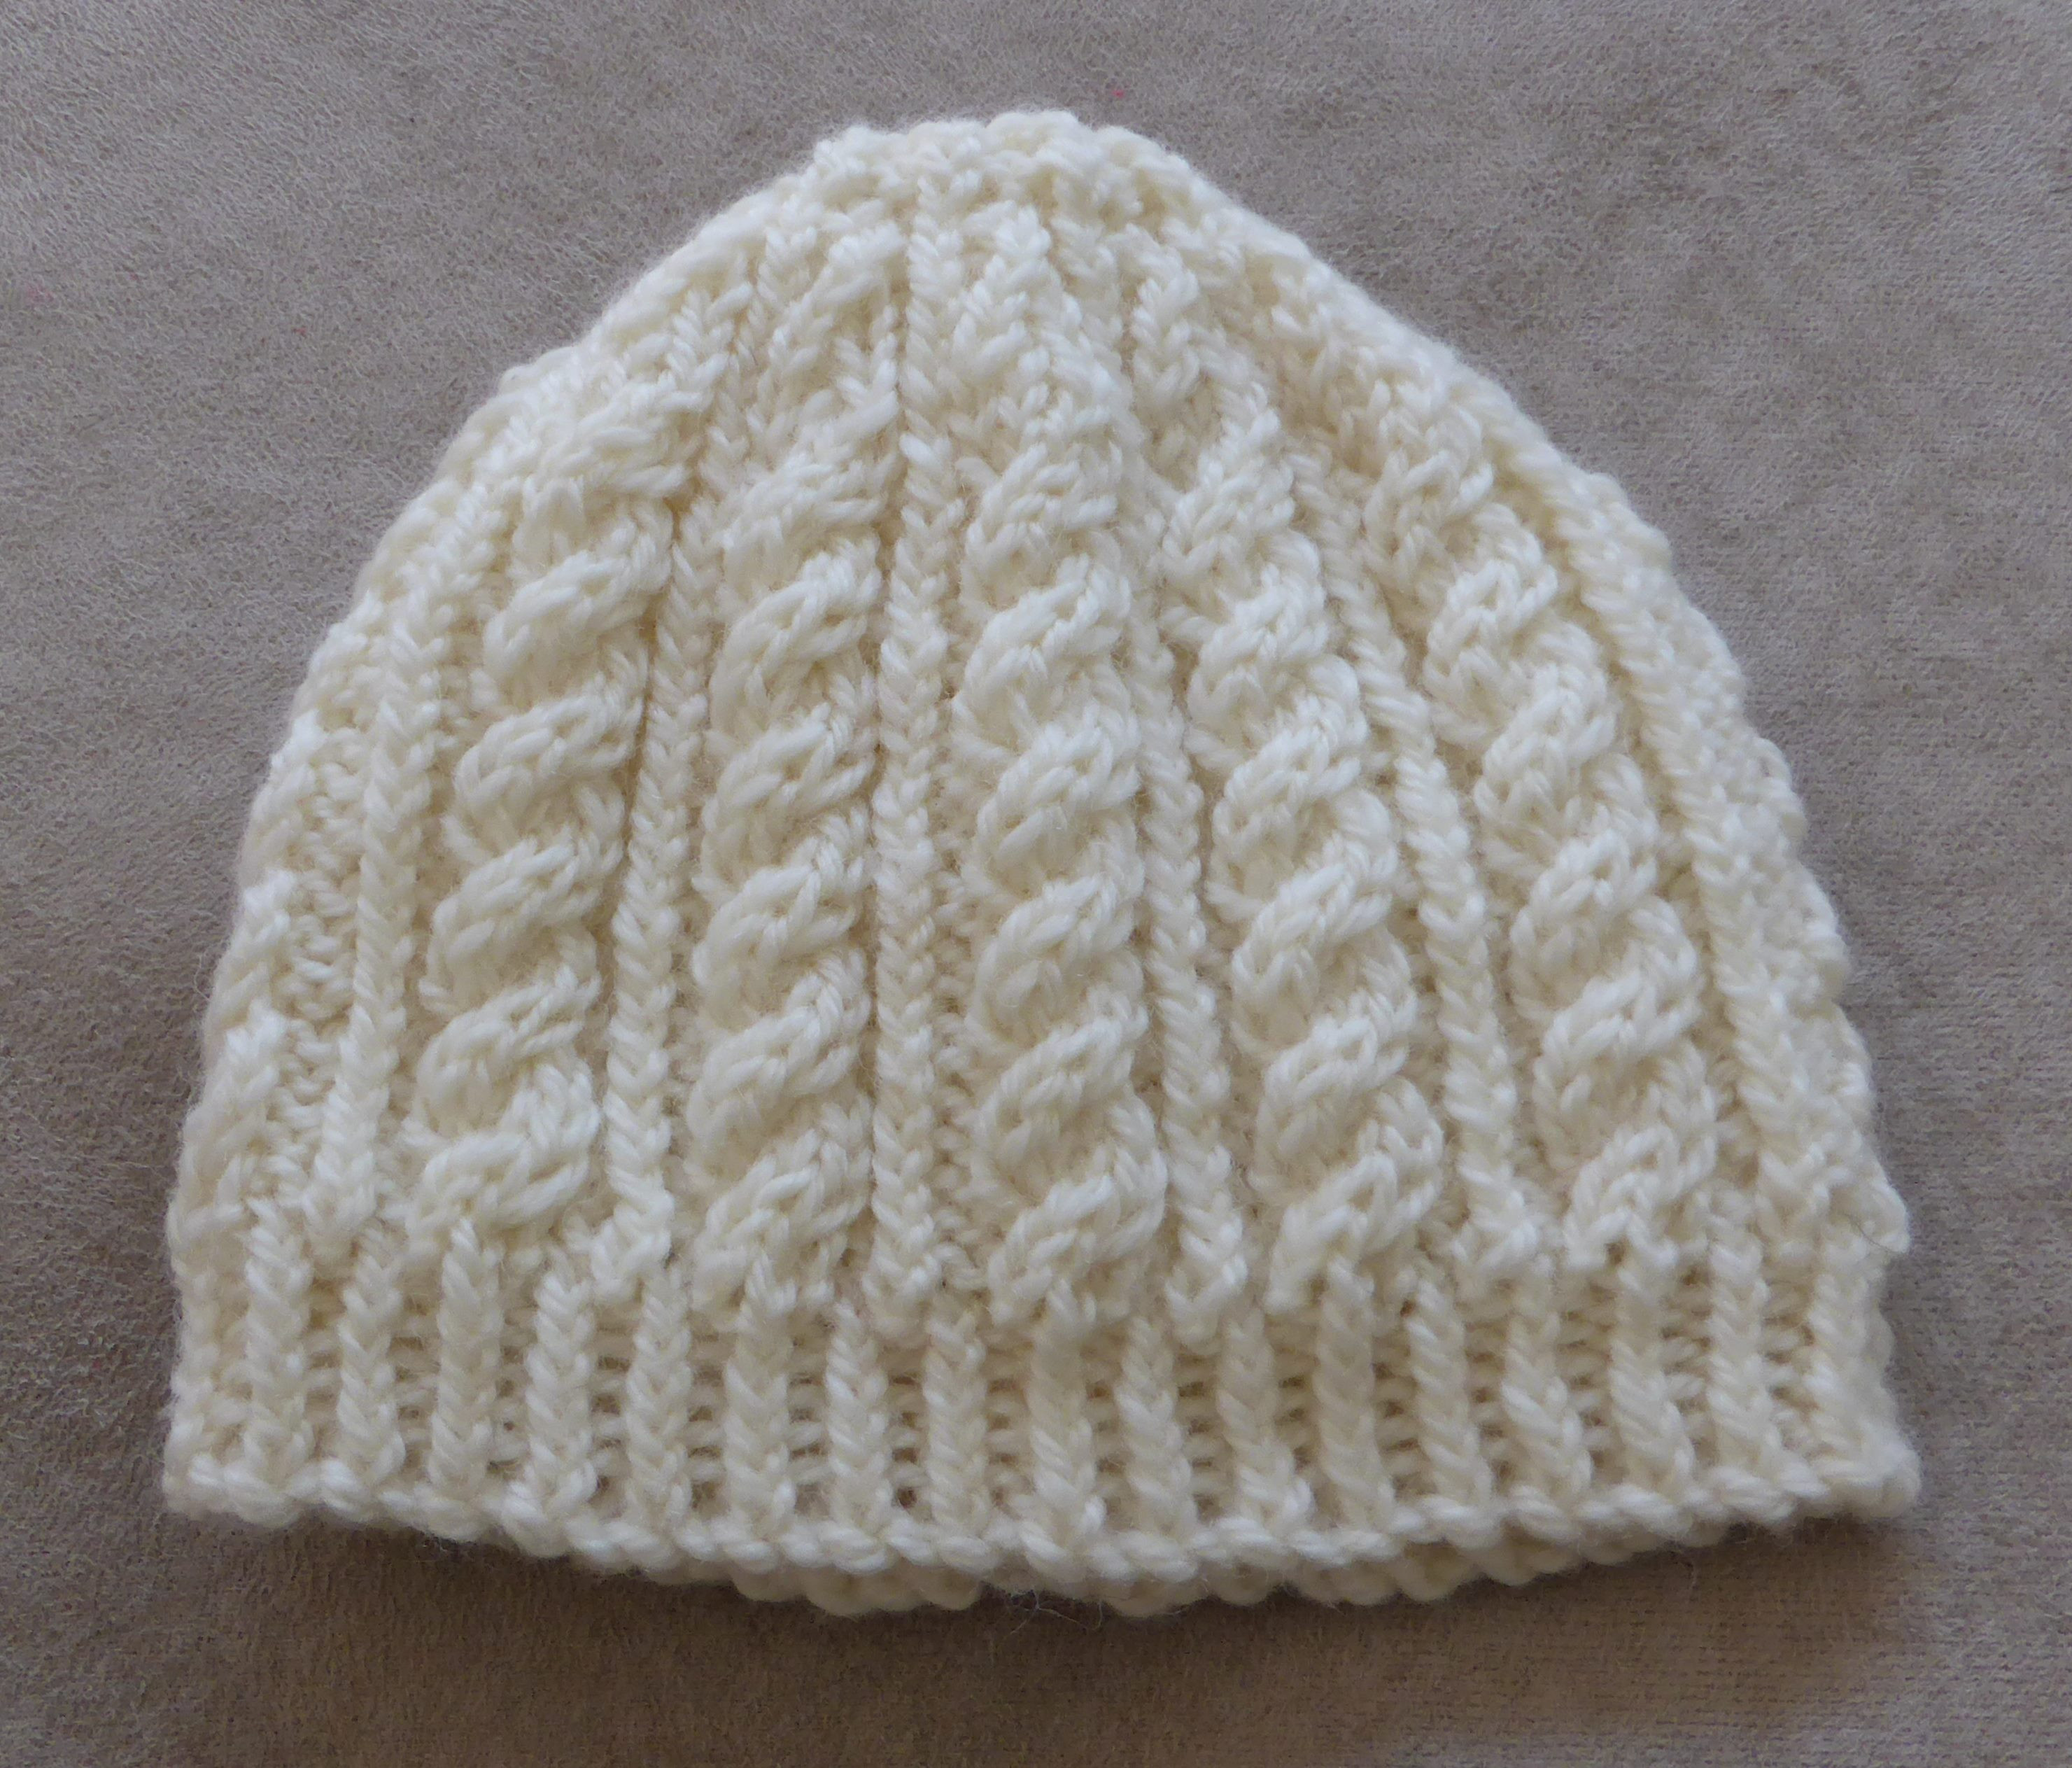 Knitting Patterns line Knitted Beanie Patterns For Babies